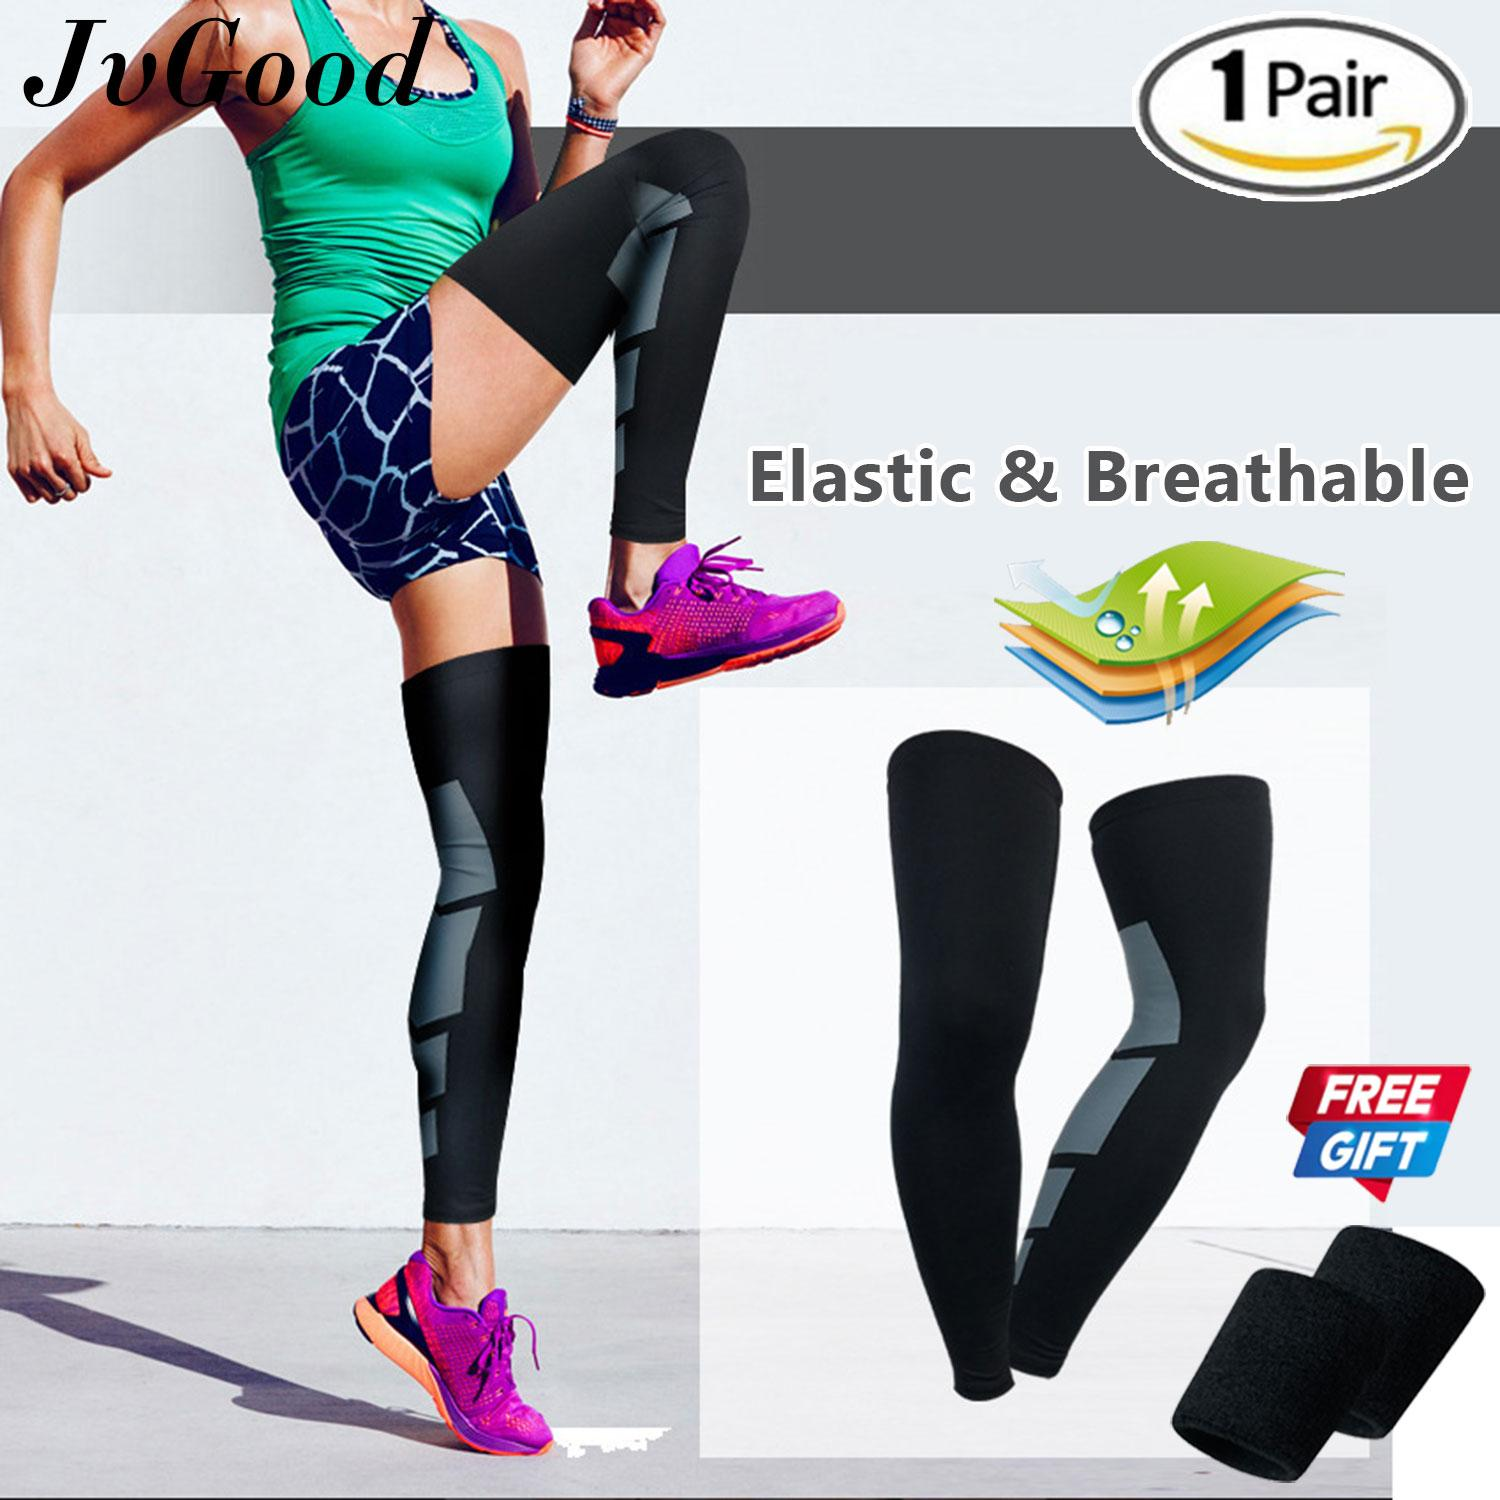 Jvgood Recovery Compression Leg Sleeve Sport Stretch Knees Long Support Pads Calf Support Sports Leg Knee Support Protective Pad Outdoor Sports Support Guards With Free Wrist Guard By Jvgood.